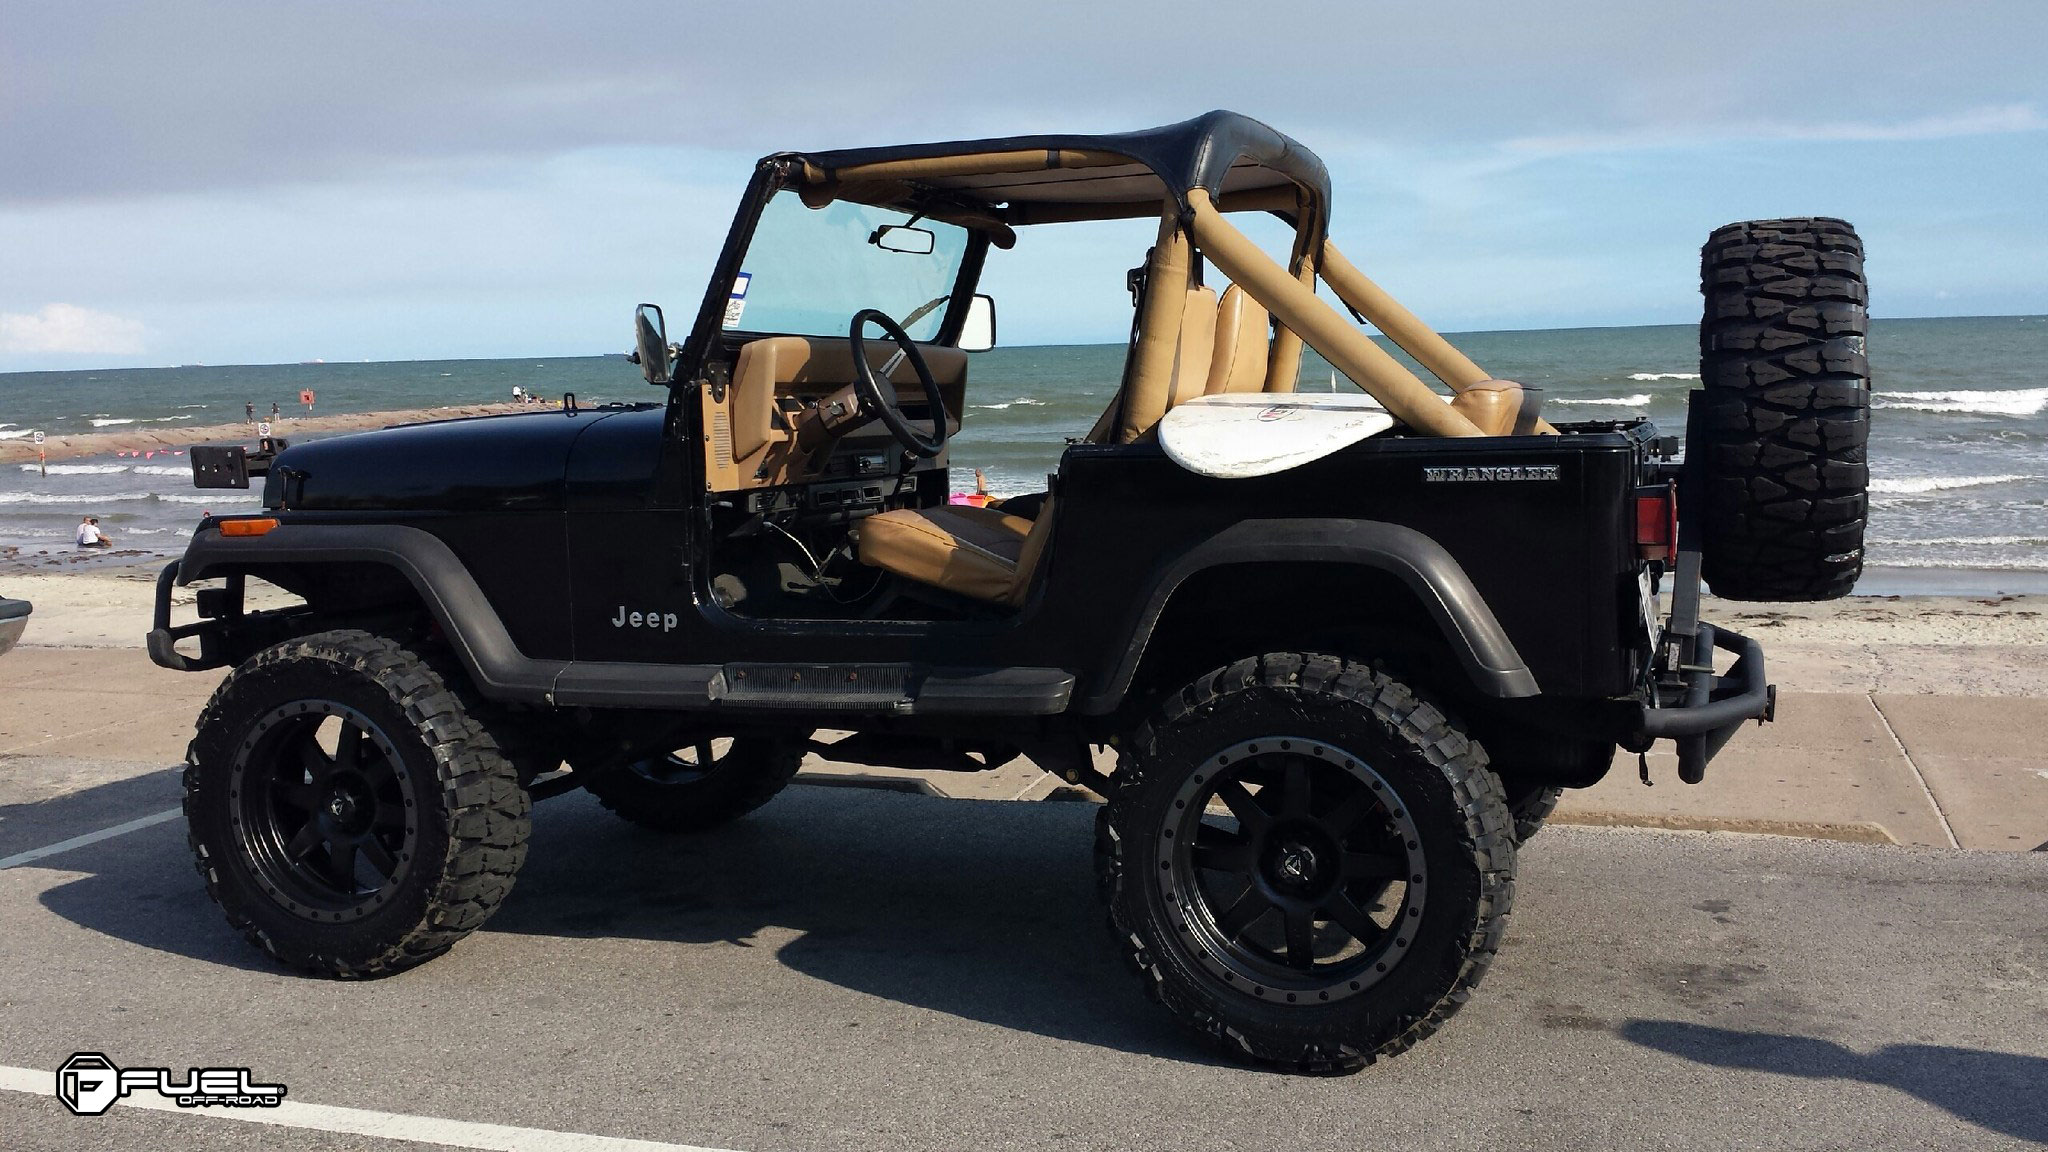 Jeep Wrangler Trophy D551 Gallery Fuel Off Road Wheels With